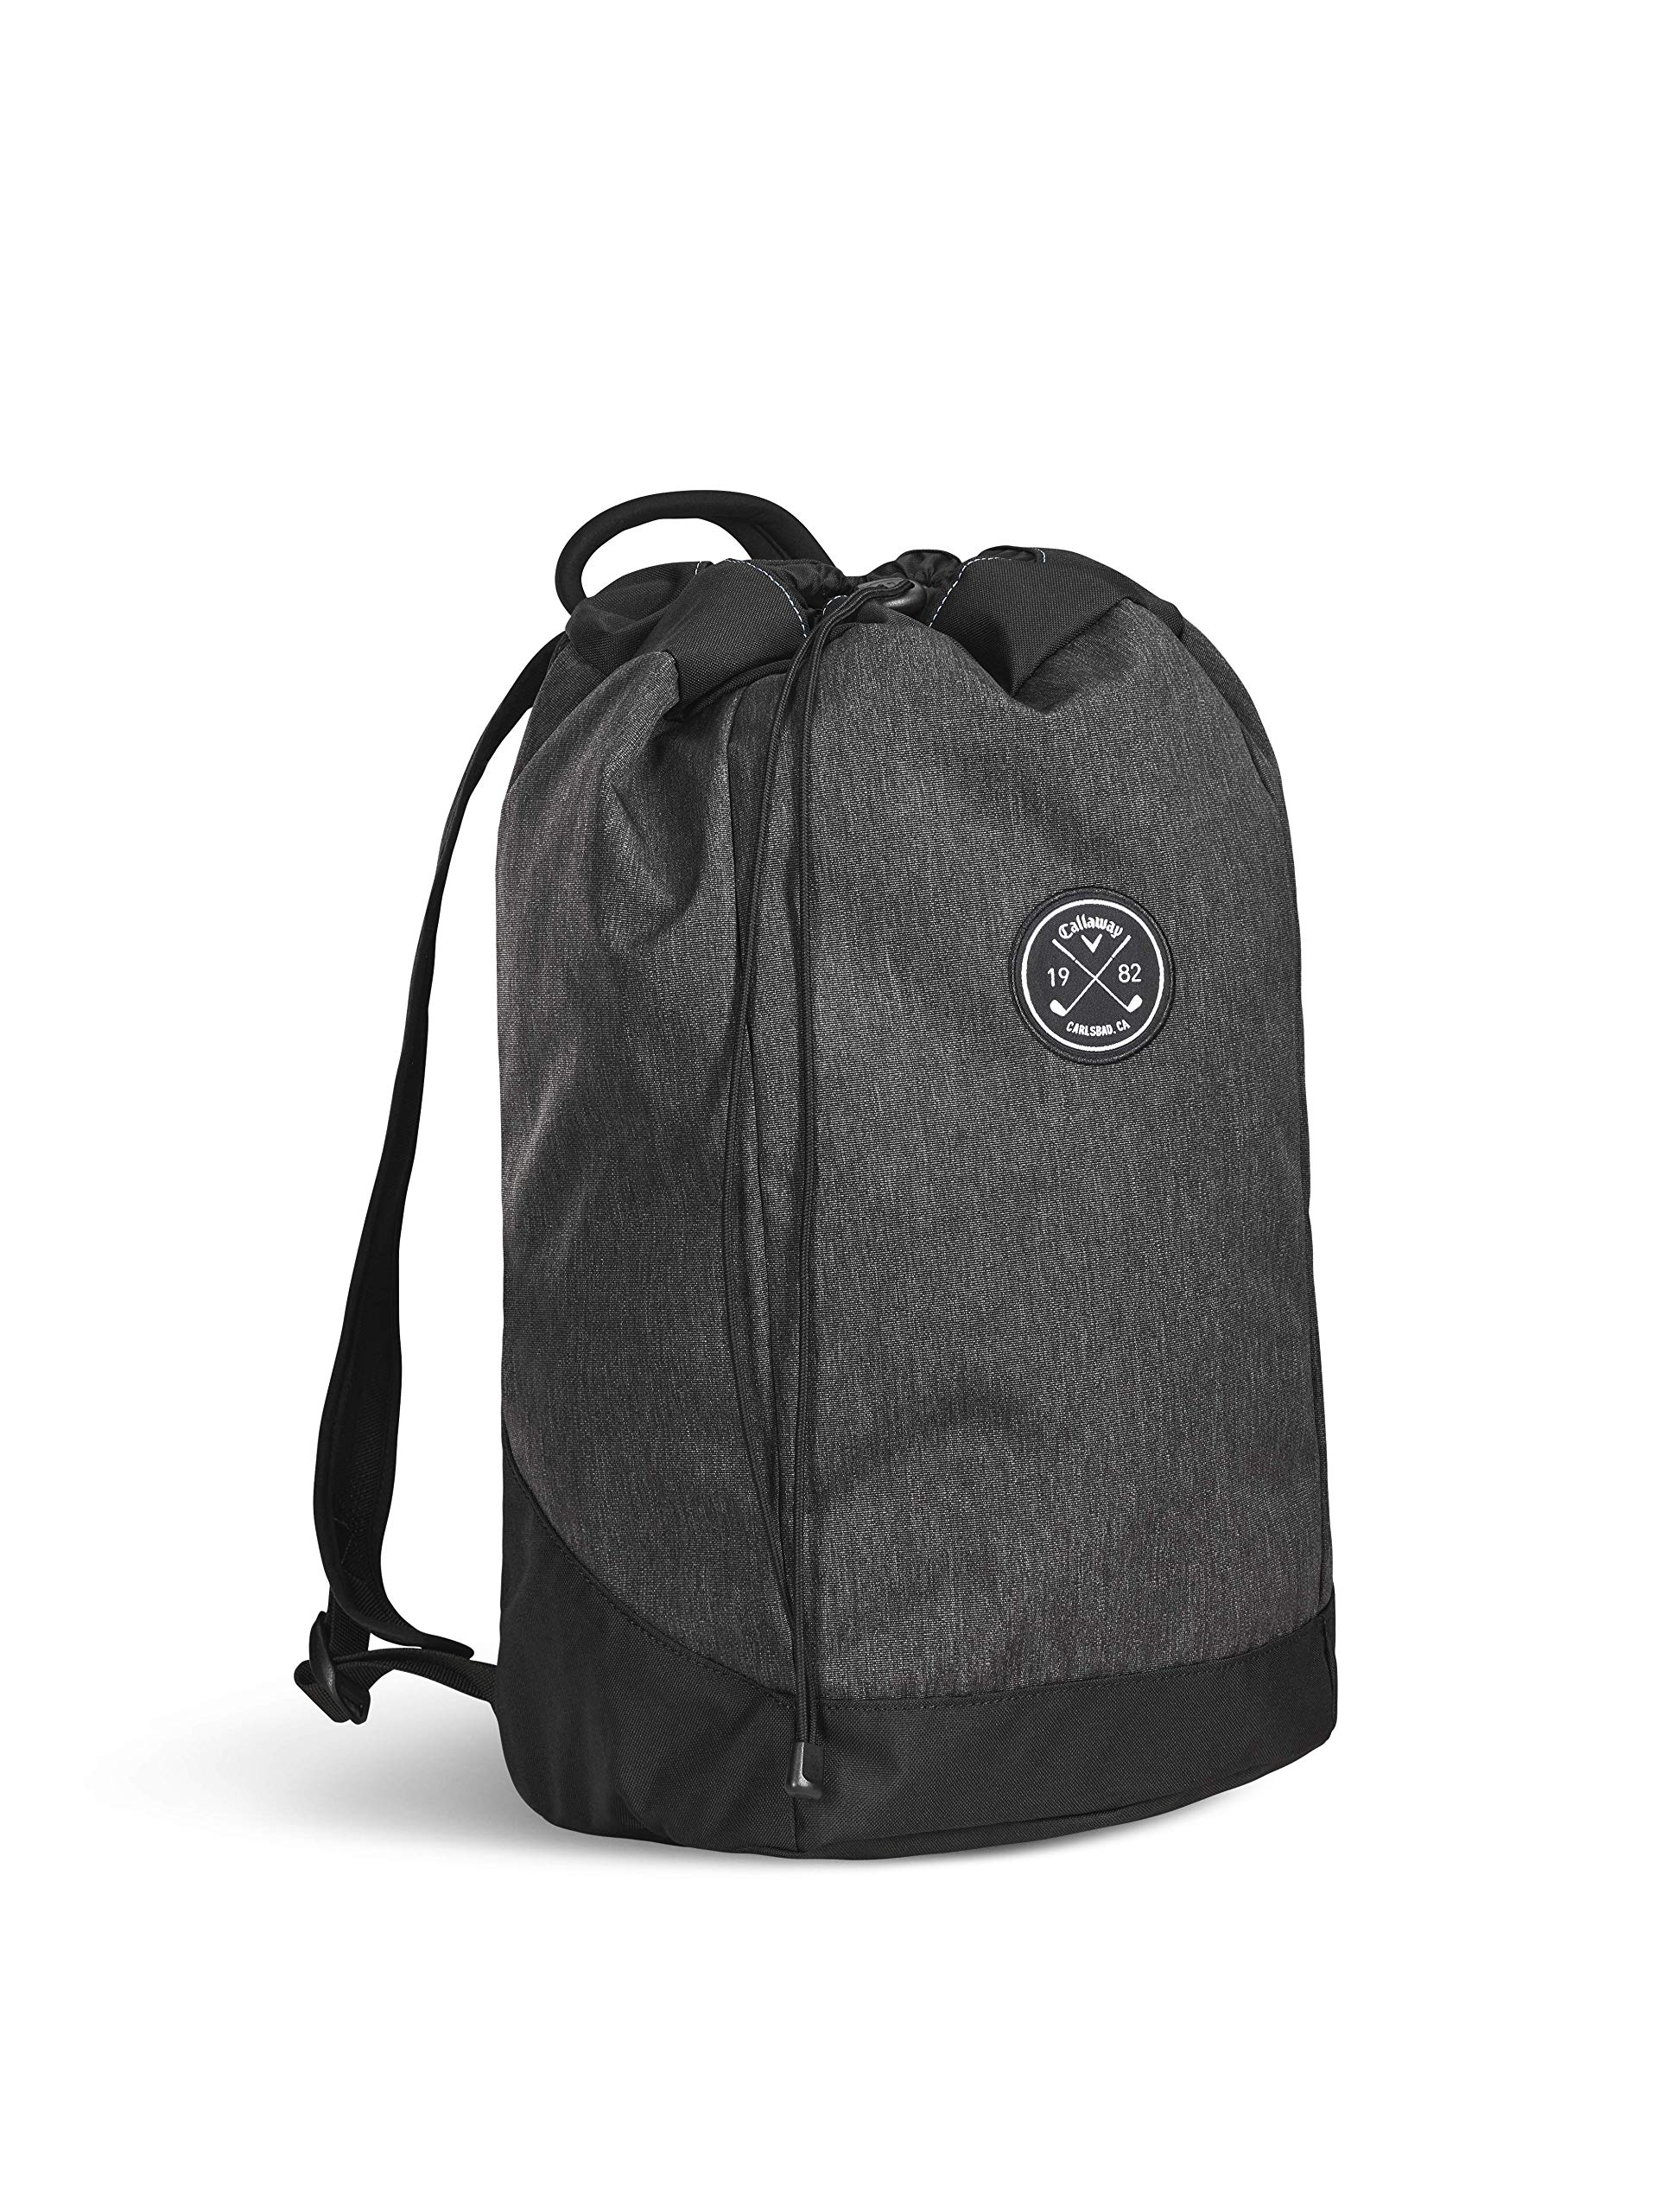 Callaway Men's Clubhouse Backpack, Black, One Size Callaway Padded Laptop Sleeve Comfort Grip Handle Interior Mesh Pocket with Key Clip 1